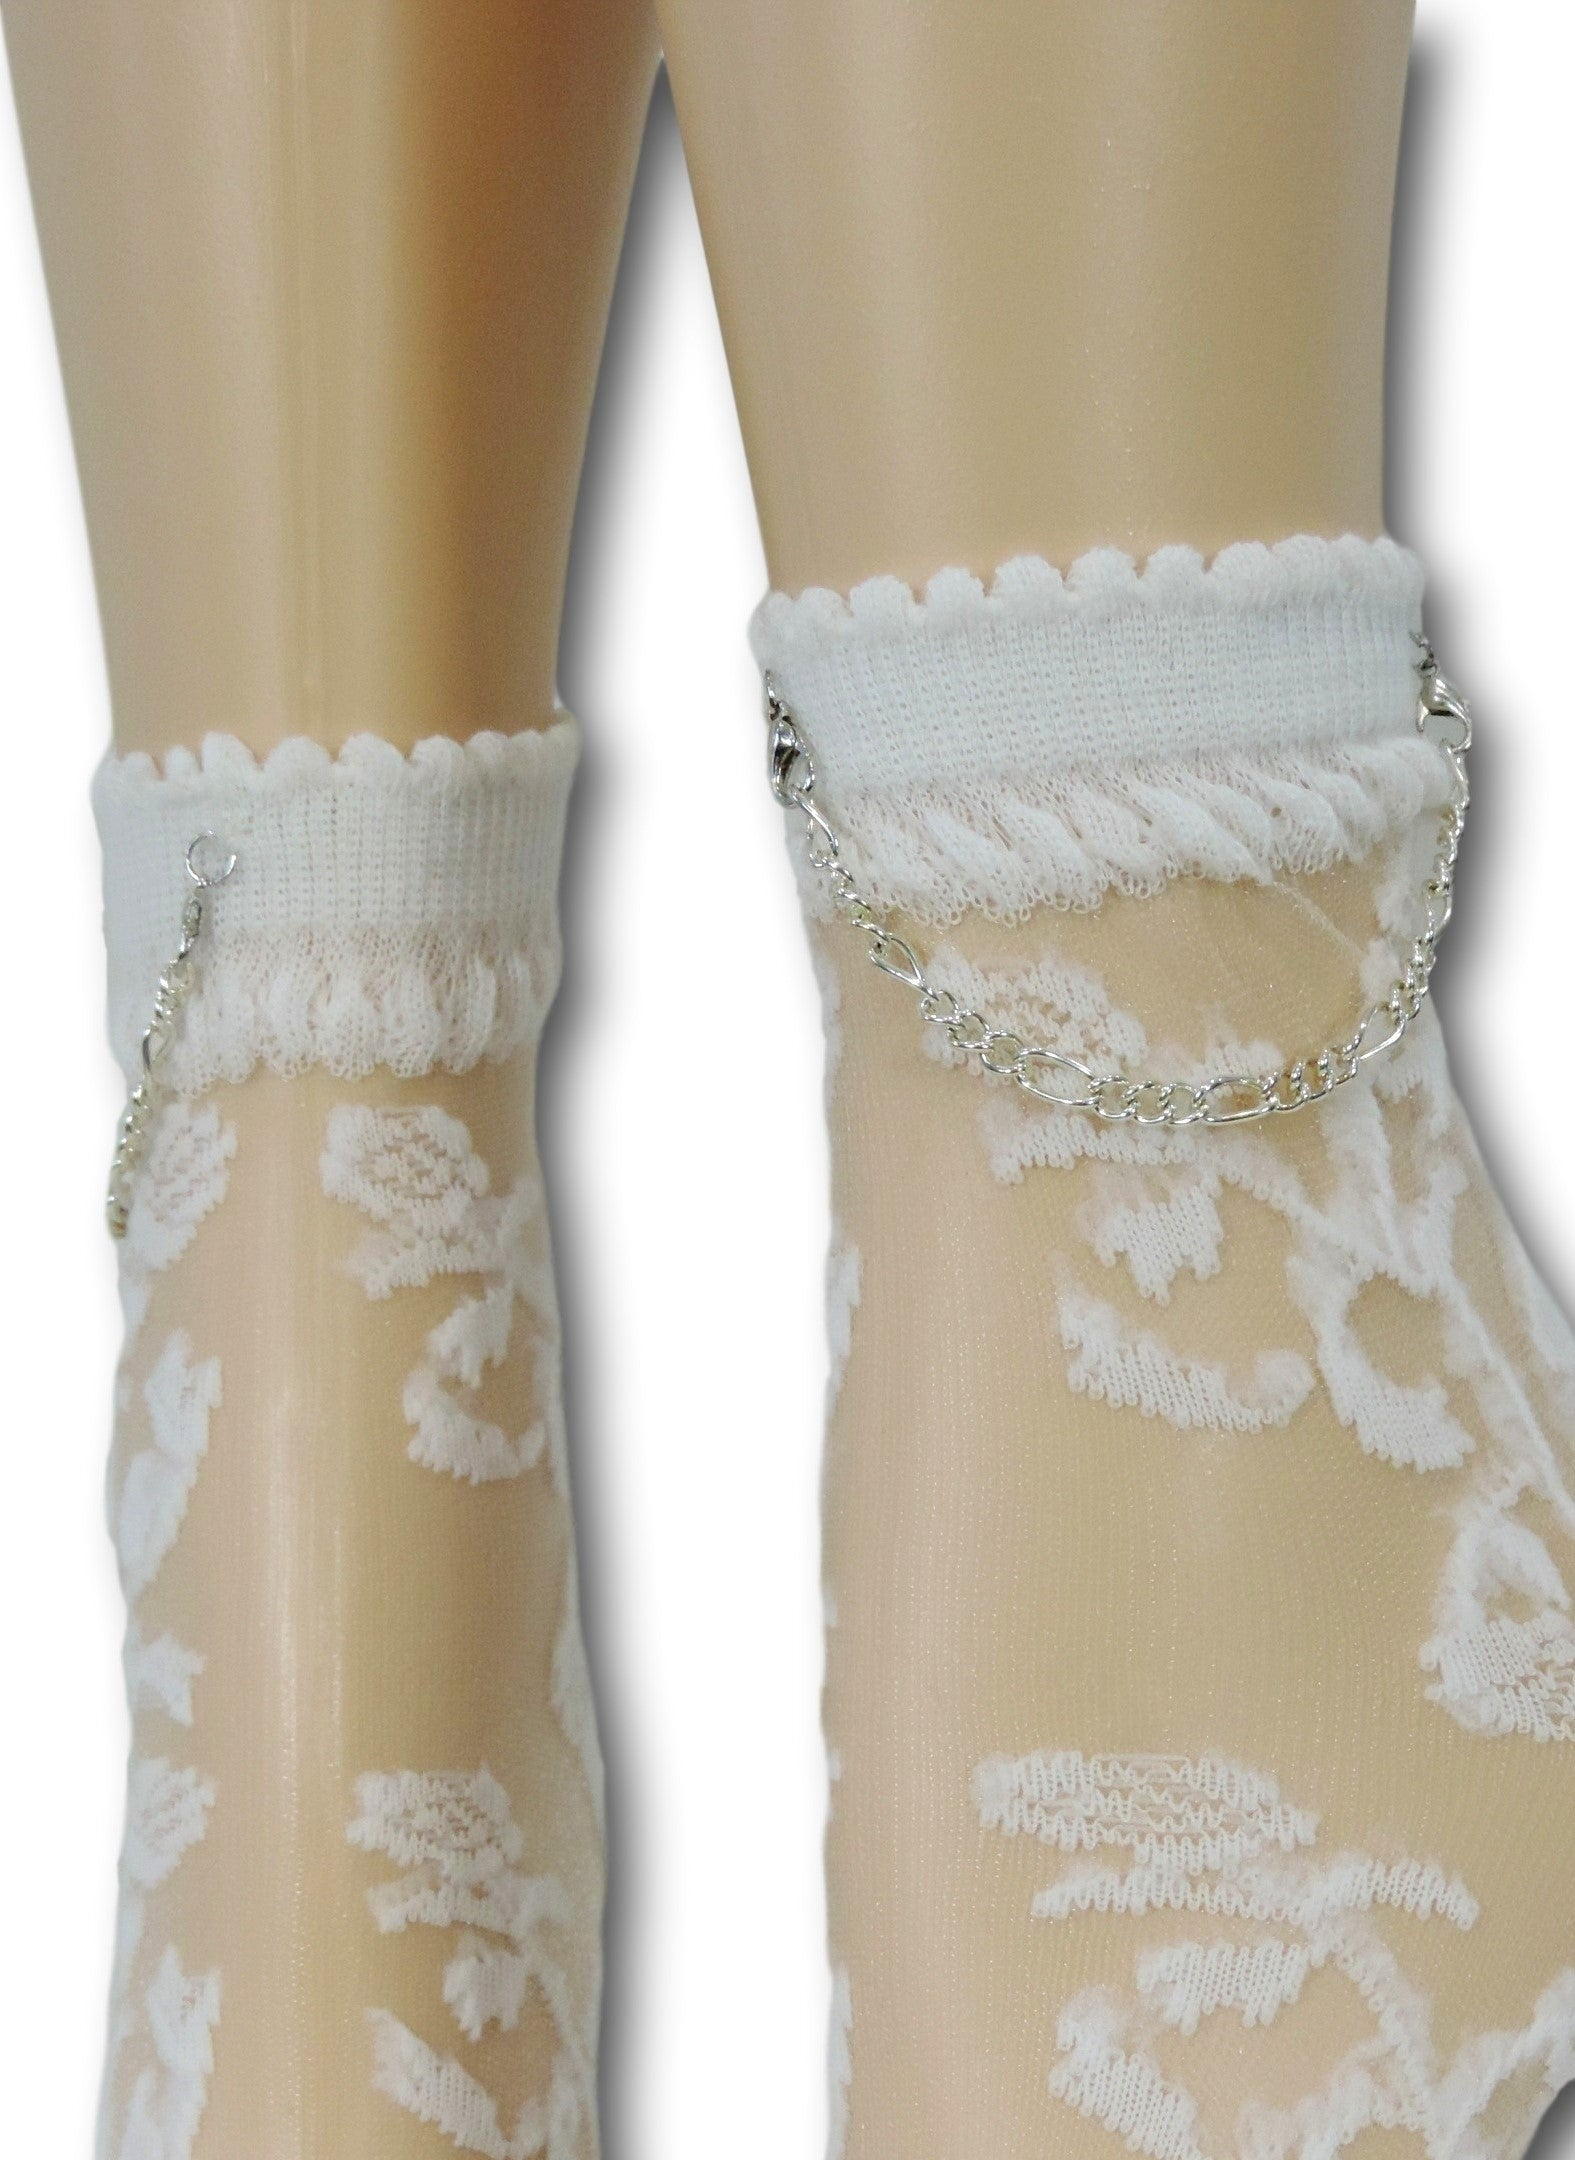 White Floral Hip Hop Socks with Chain